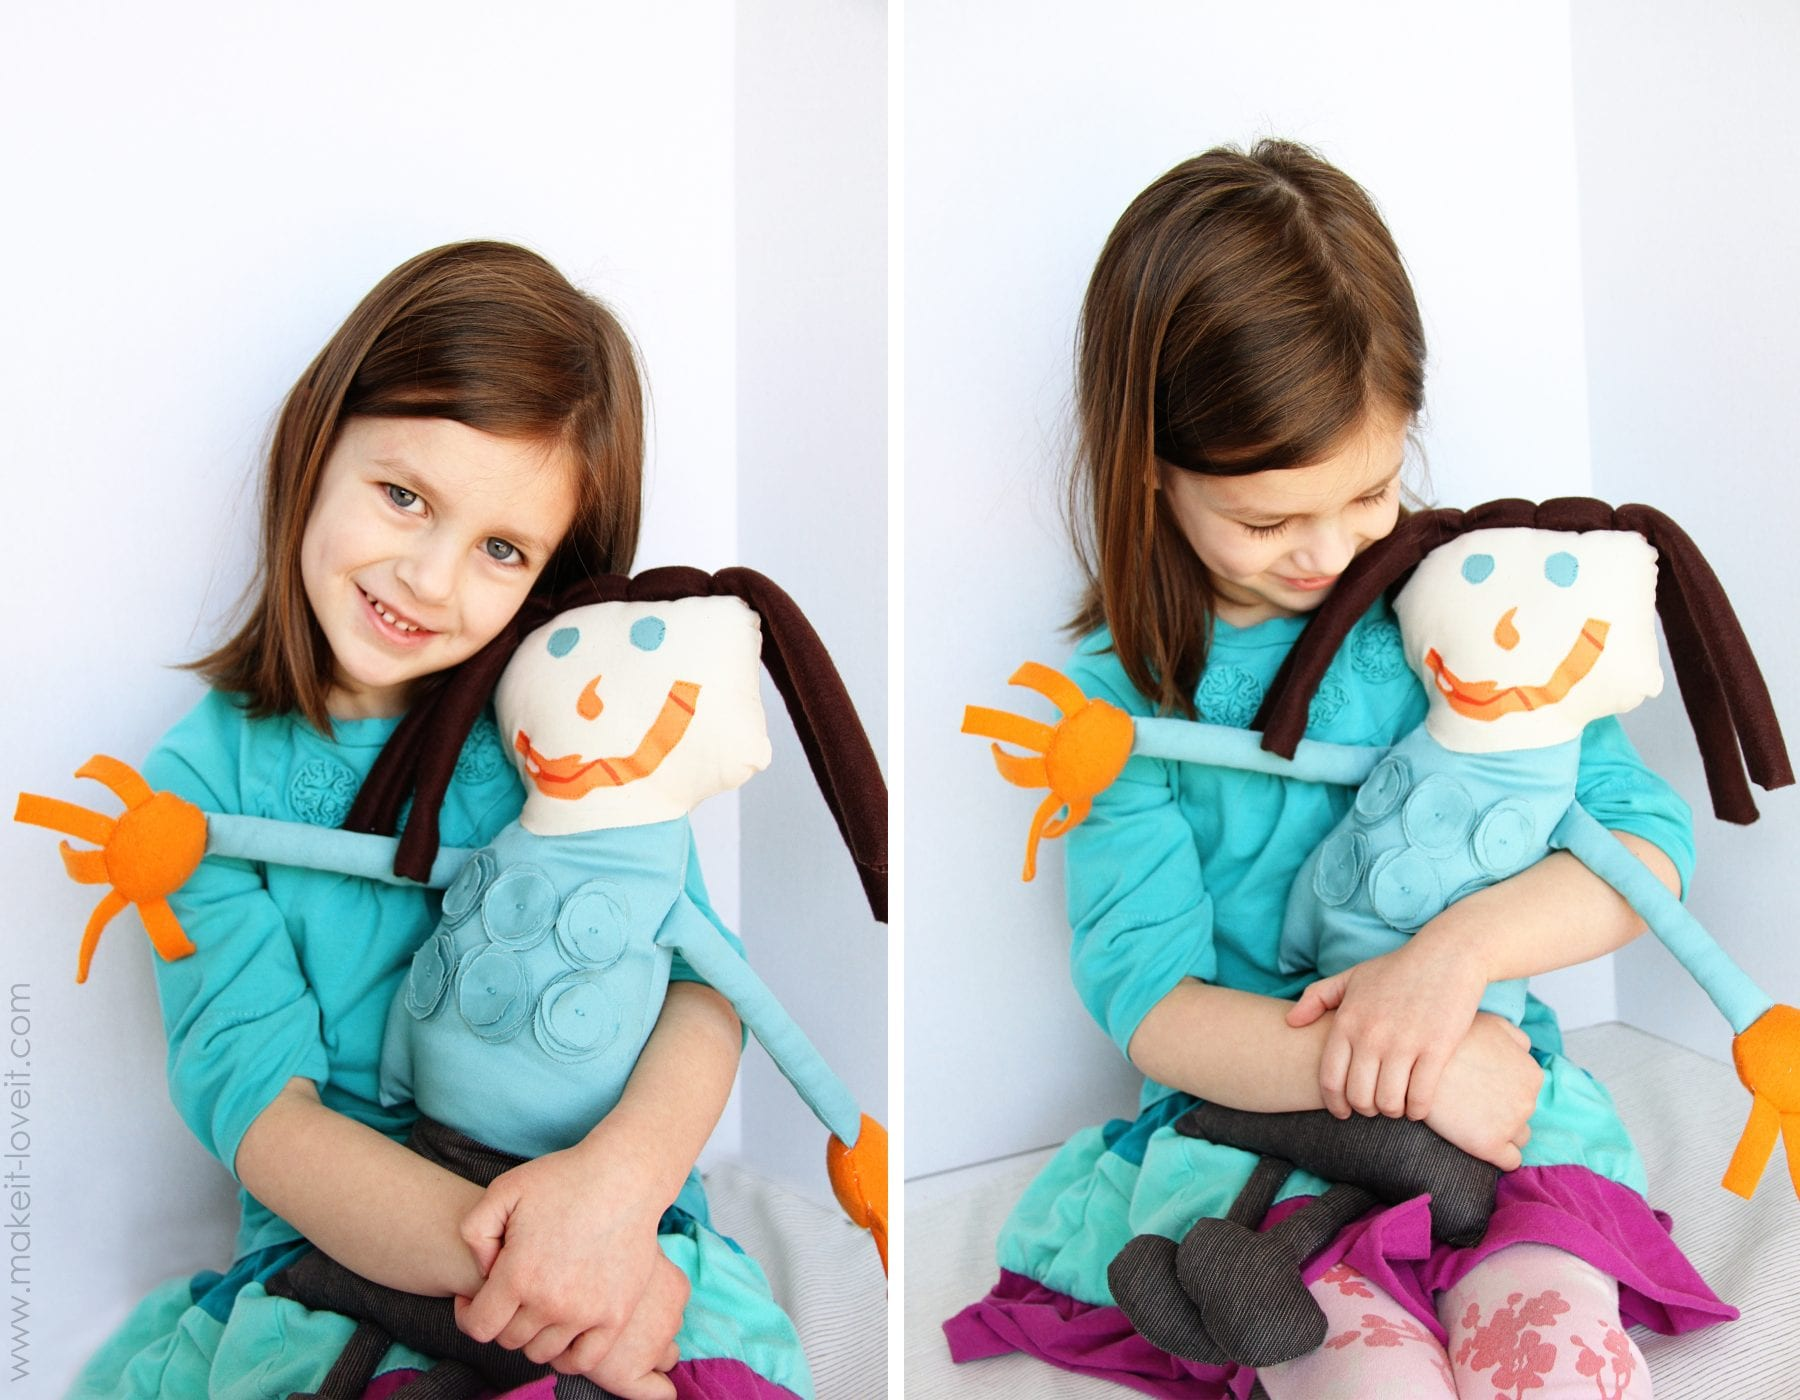 holding doll